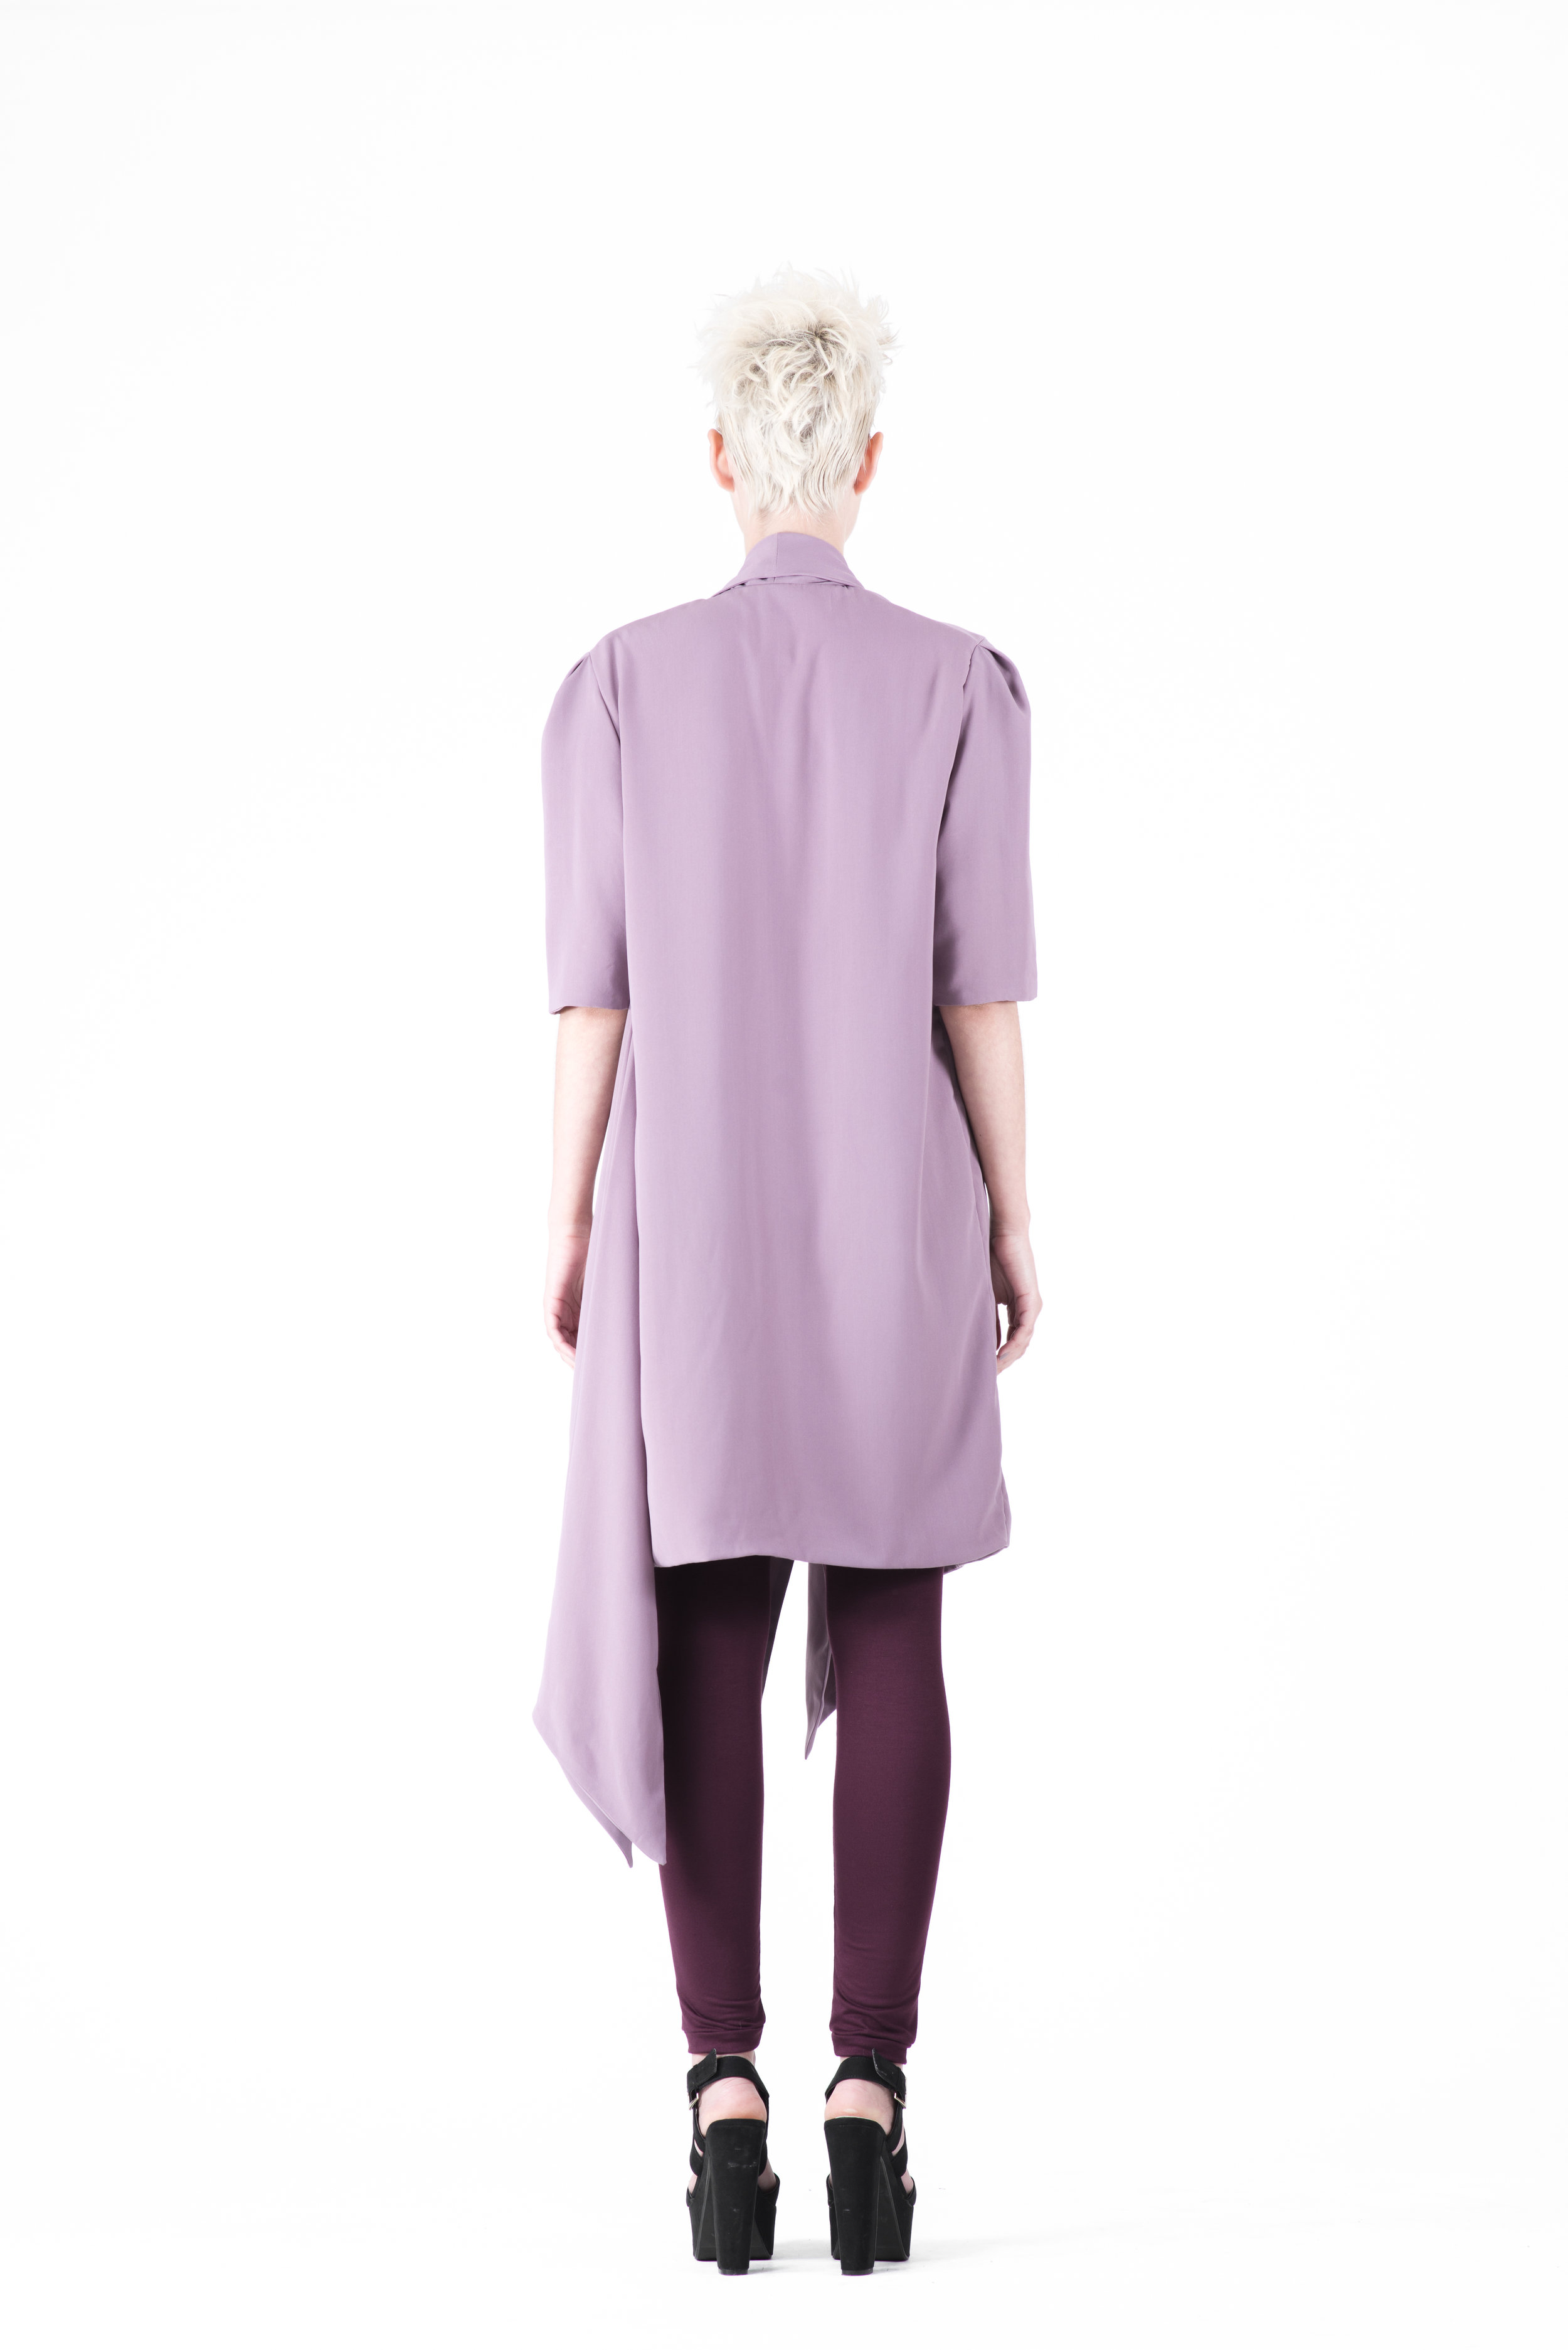 zaramia-ava-zaramiaava-leeds-fashion-designer-ethical-sustainable-tailored-minimalist-maika-mauve-dress-jacket-dress-versatile-rei-plum-legginges-drape-cowl-styling-womenswear-models-photoshoot-64